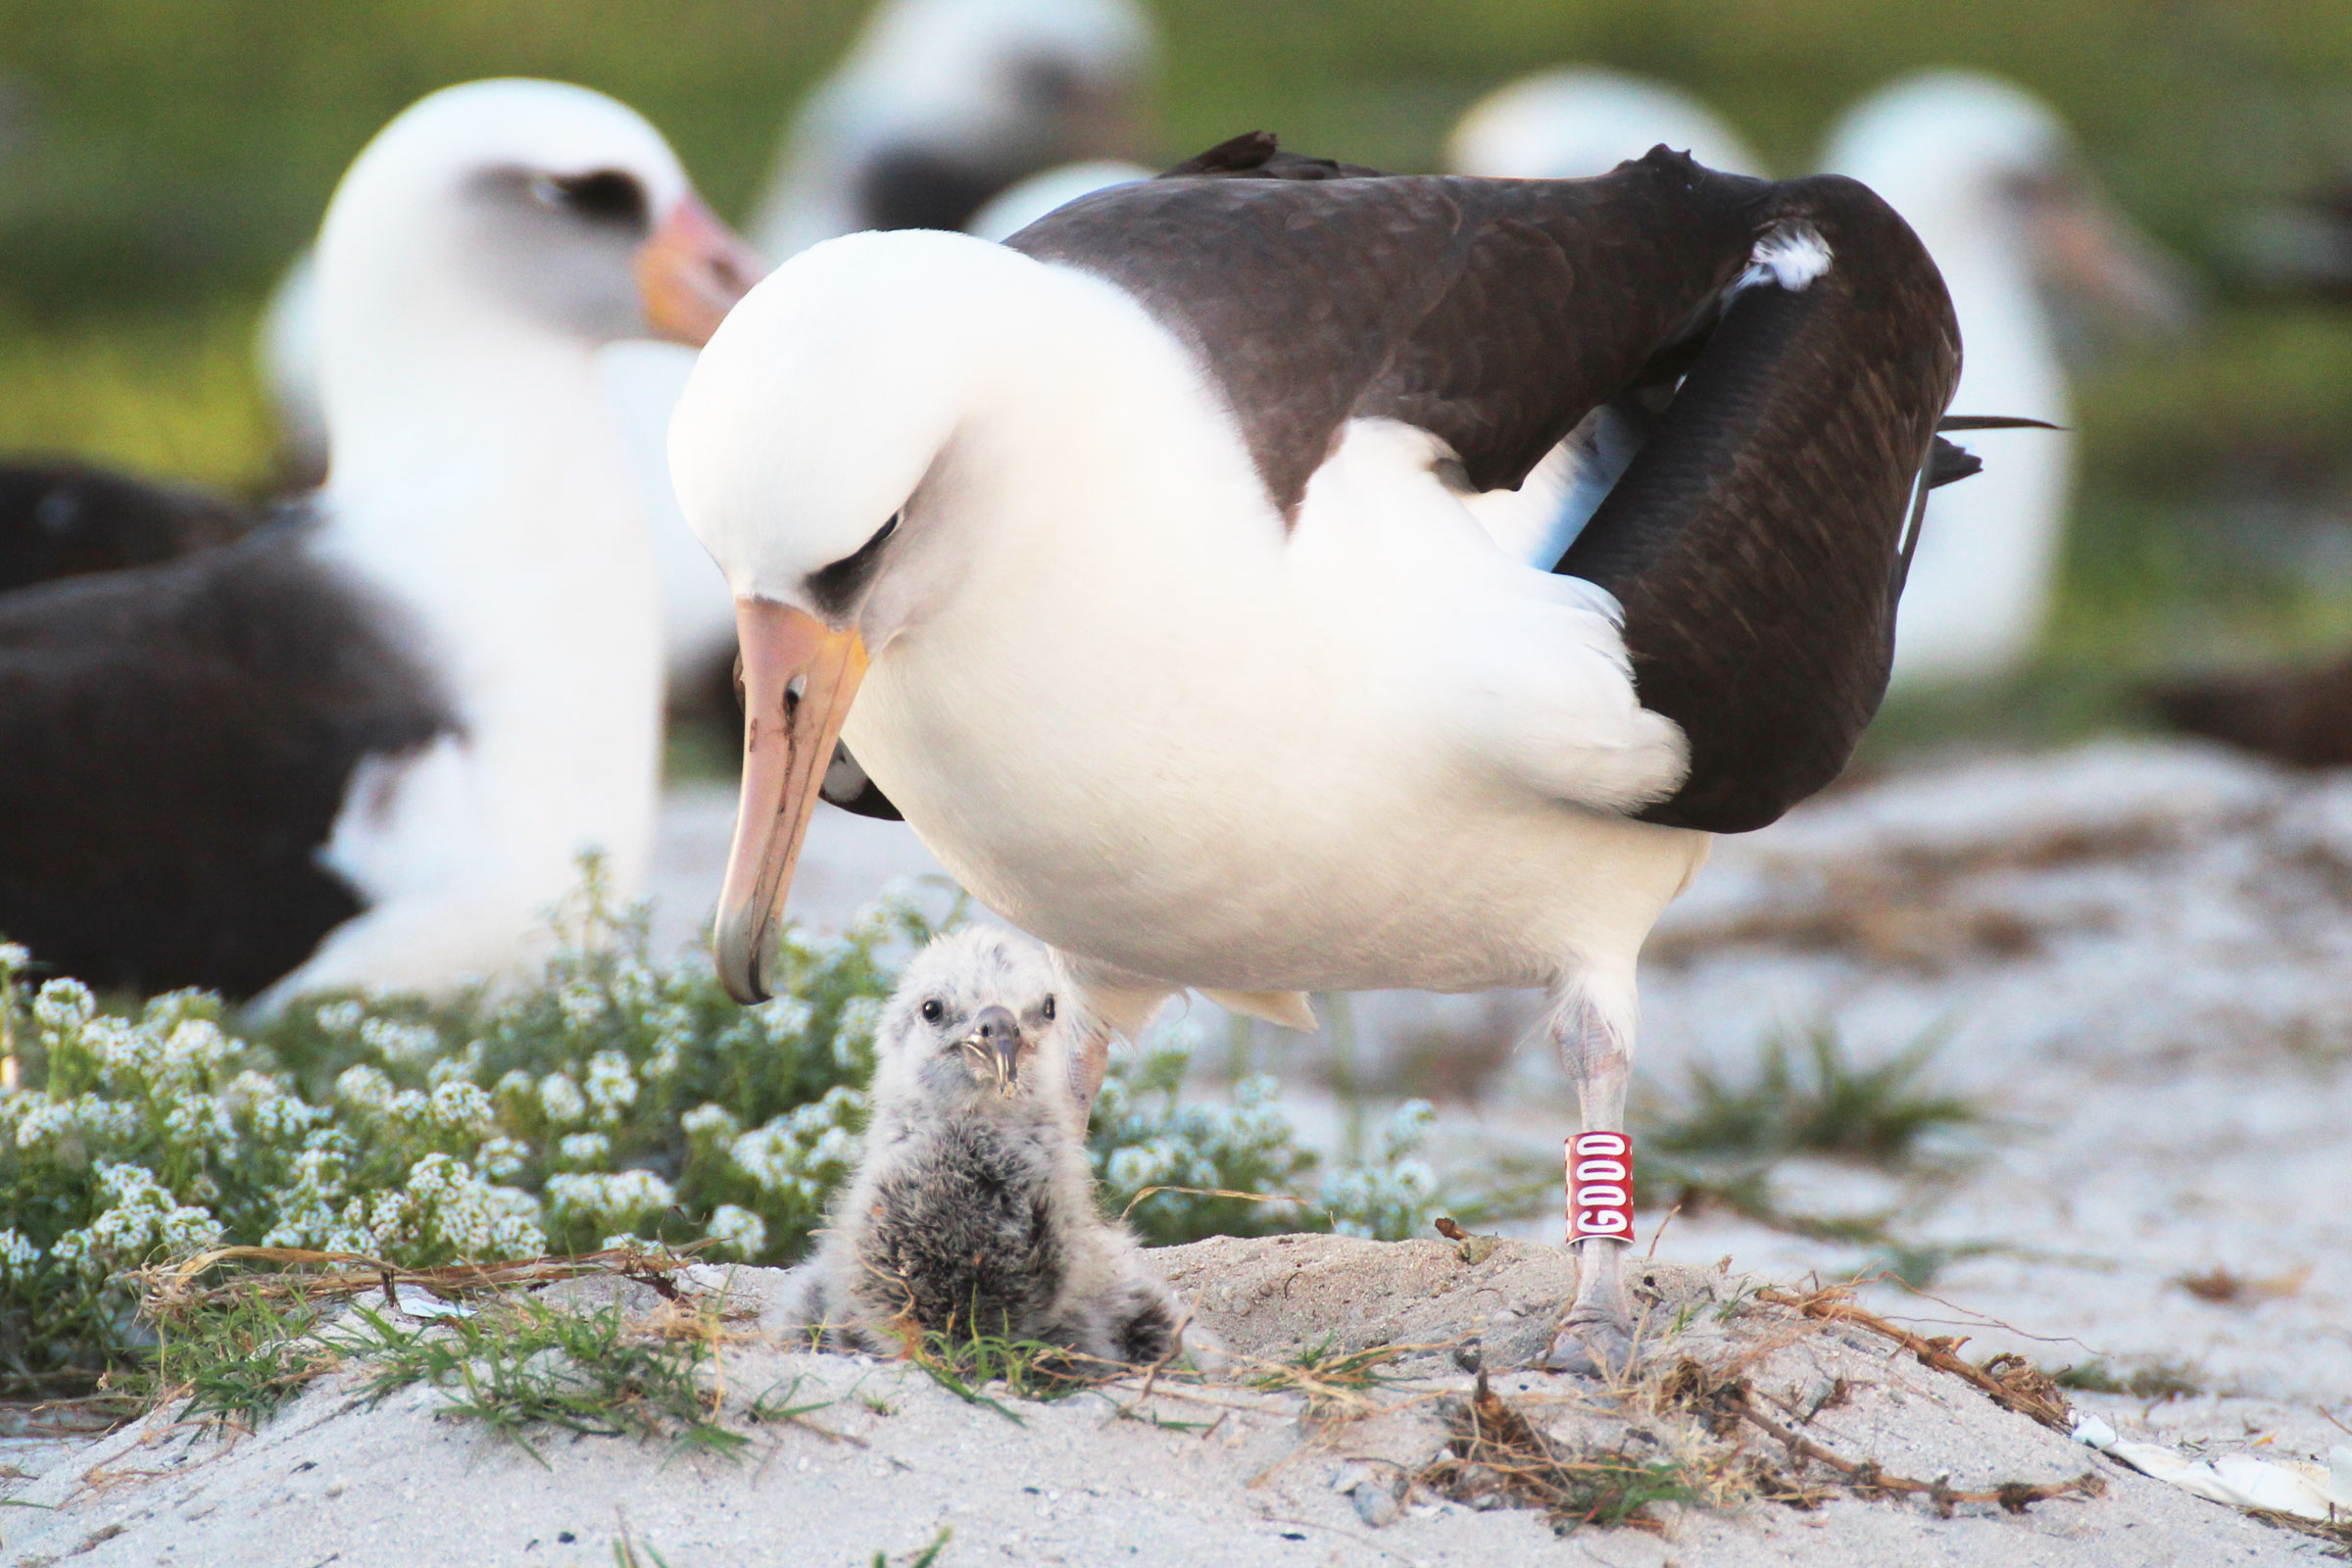 Wisdom's chick hatched on February 1, 2016, and was later named Kūkini, the Hawaiian word for messenger. Here, Wisdom's mate, who was present for the hatching, is seen caring for the chick. Kiah Walker/USFWS